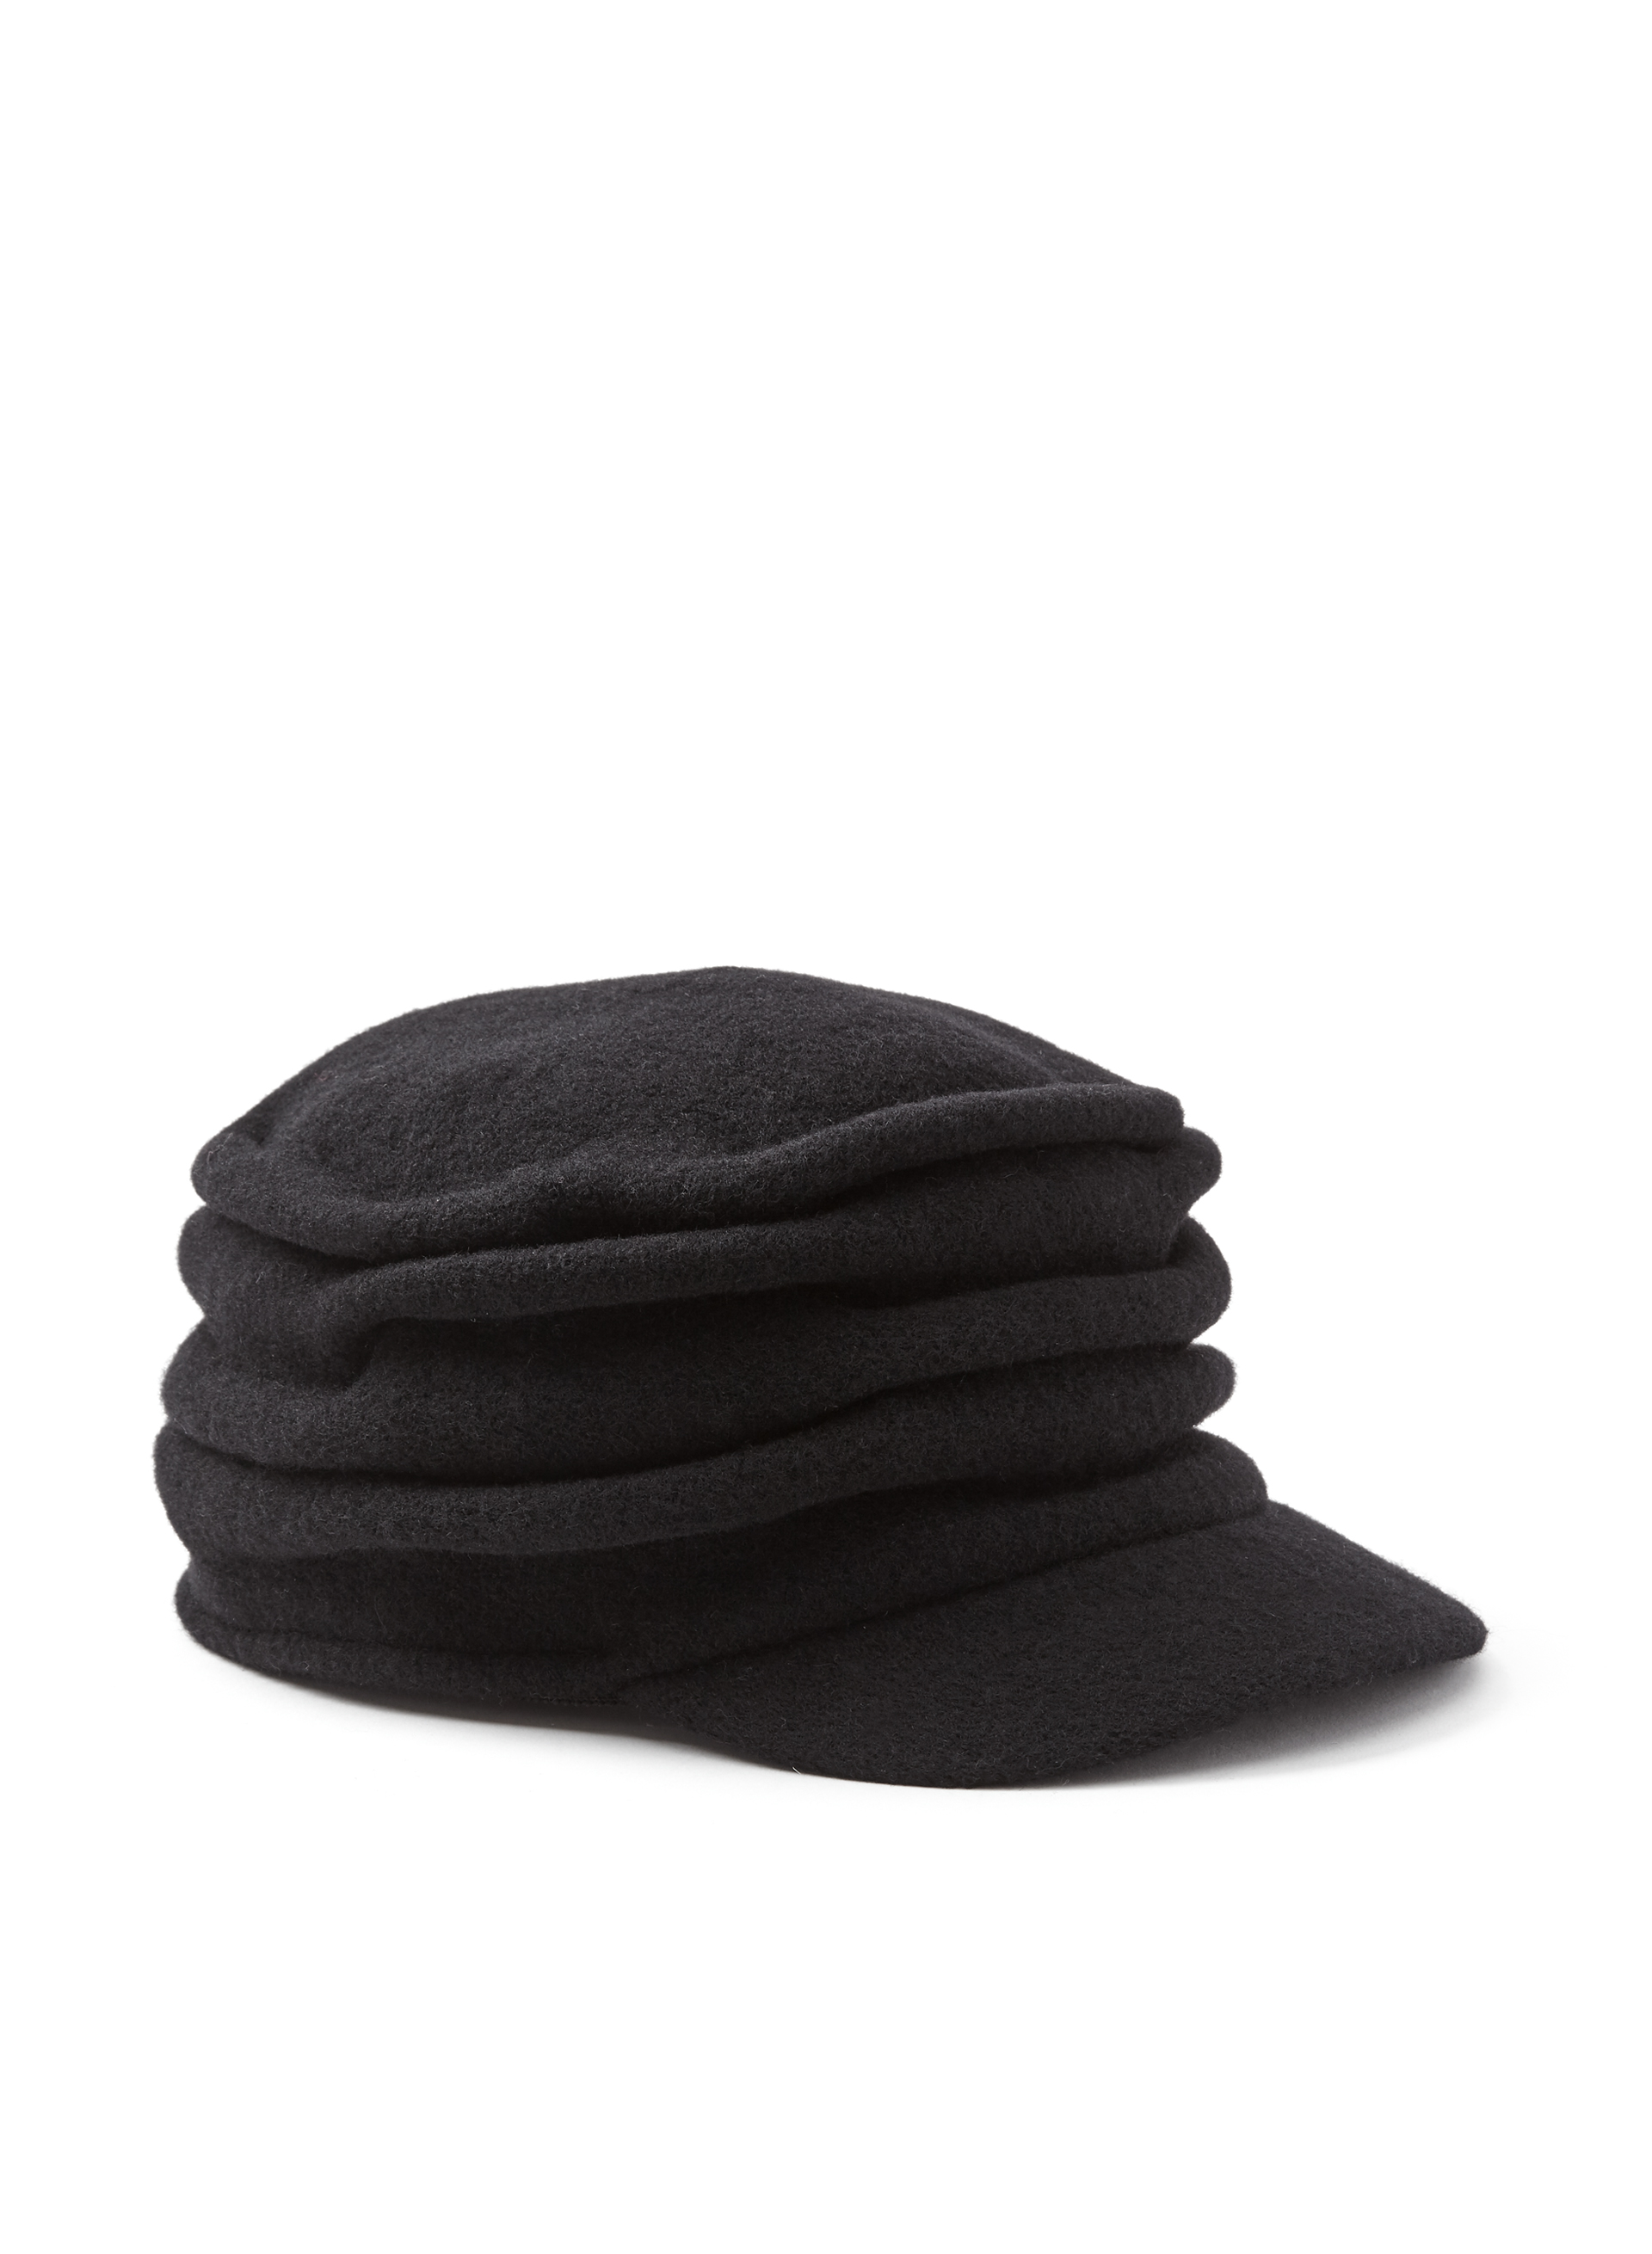 Pleated Wool Cap, Black, hi-res